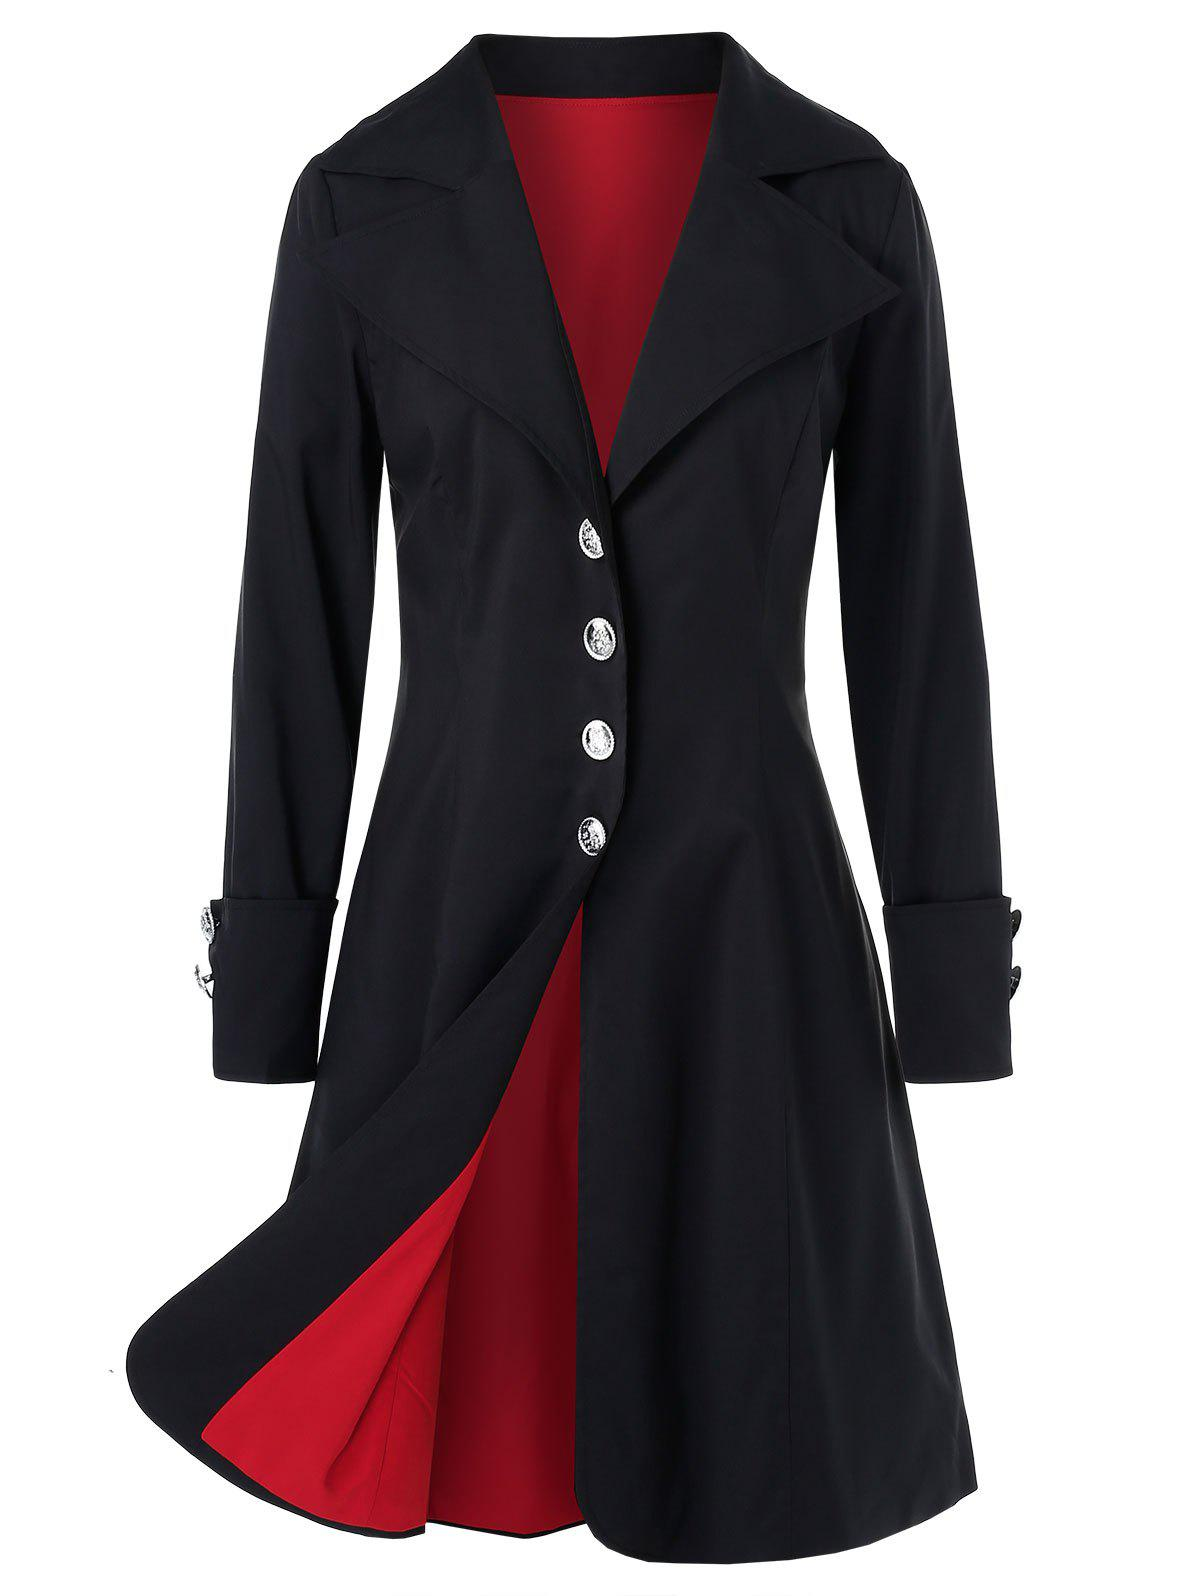 Manteau Long Simple Boutonnage Grande Taille à Revers Noir 4X